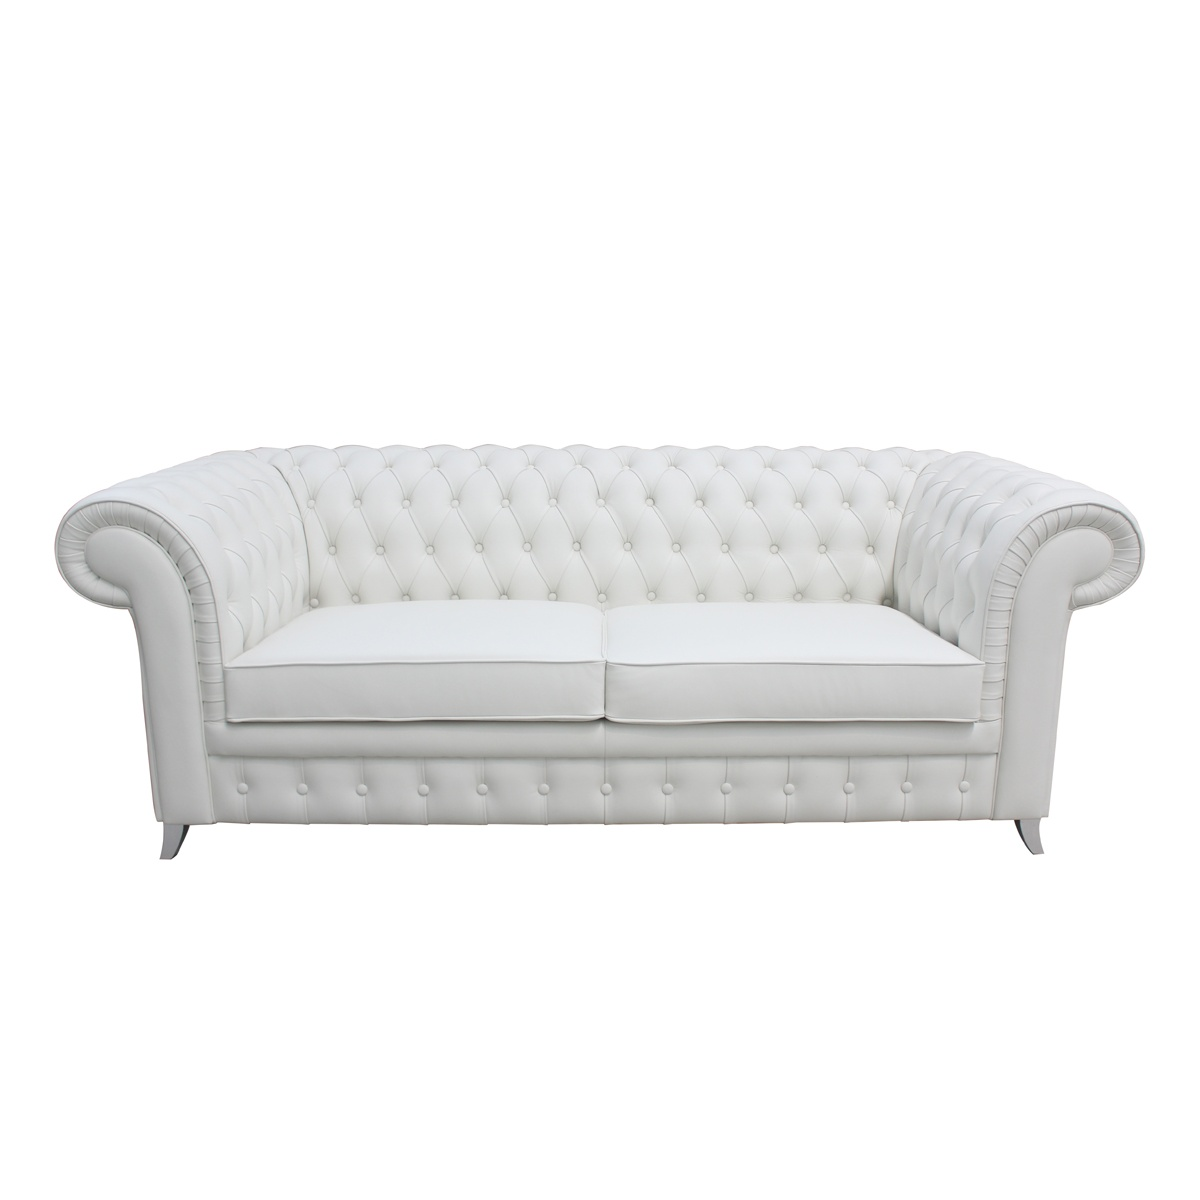 chesterfield sofa leather white best loveseat sleeper chaplin swanky interiors